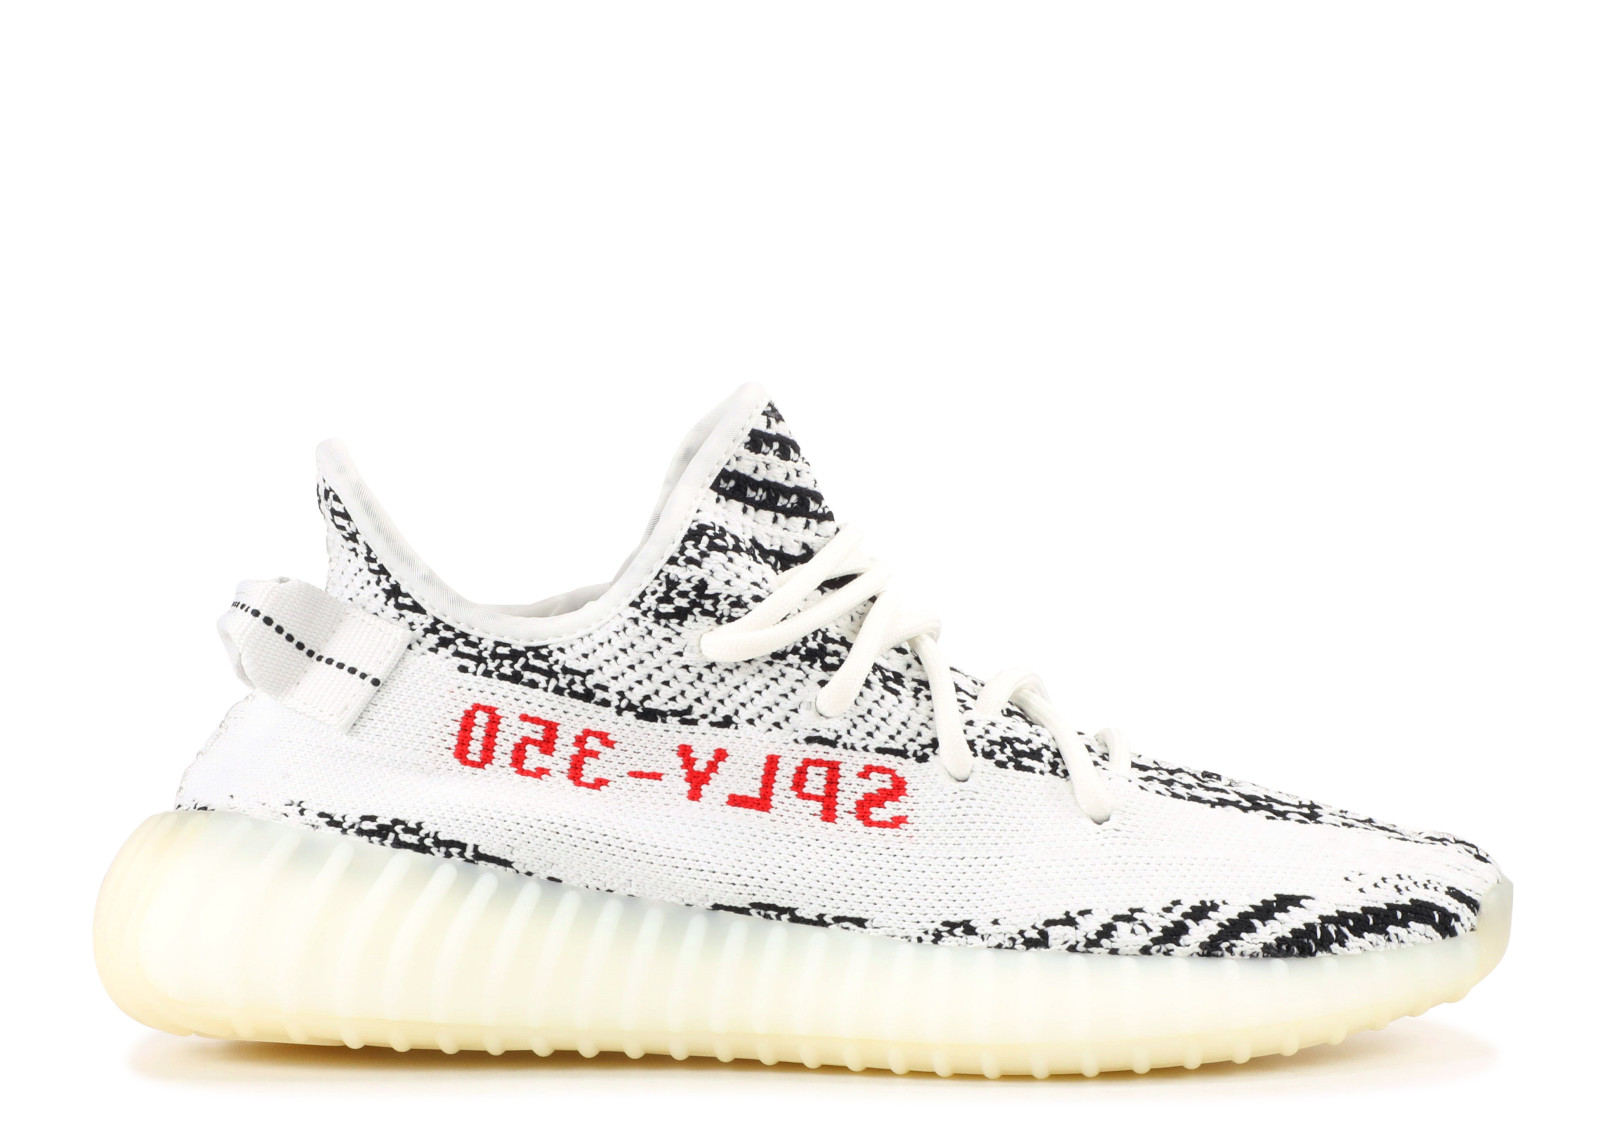 yeezy boost zebra price